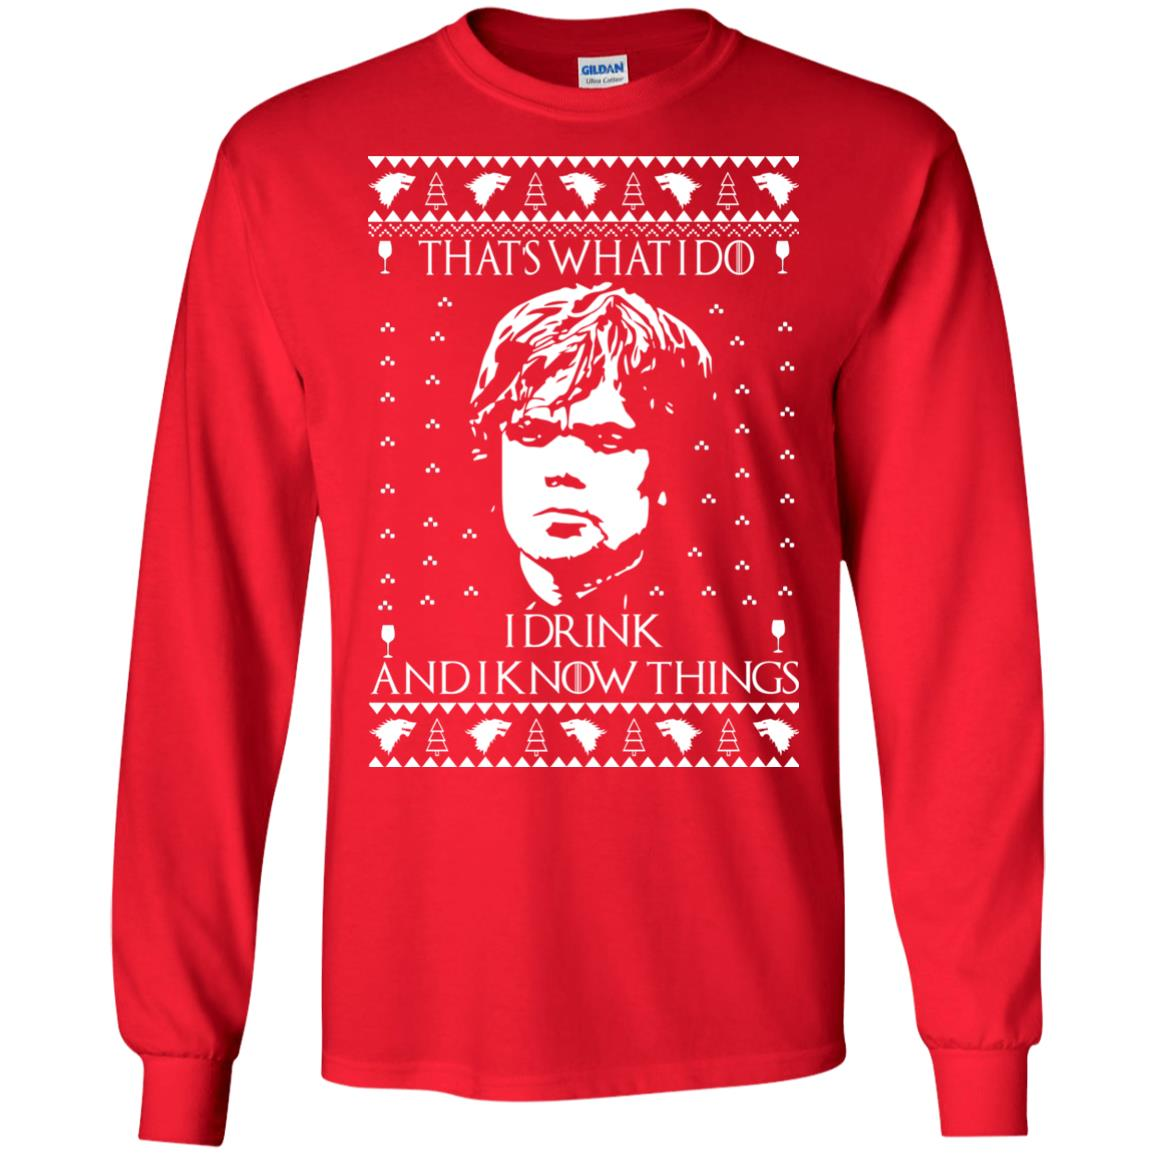 image 3003 - Tyrion Lannister I Drink and I Know Things Ugly Christmas Sweater, Shirt